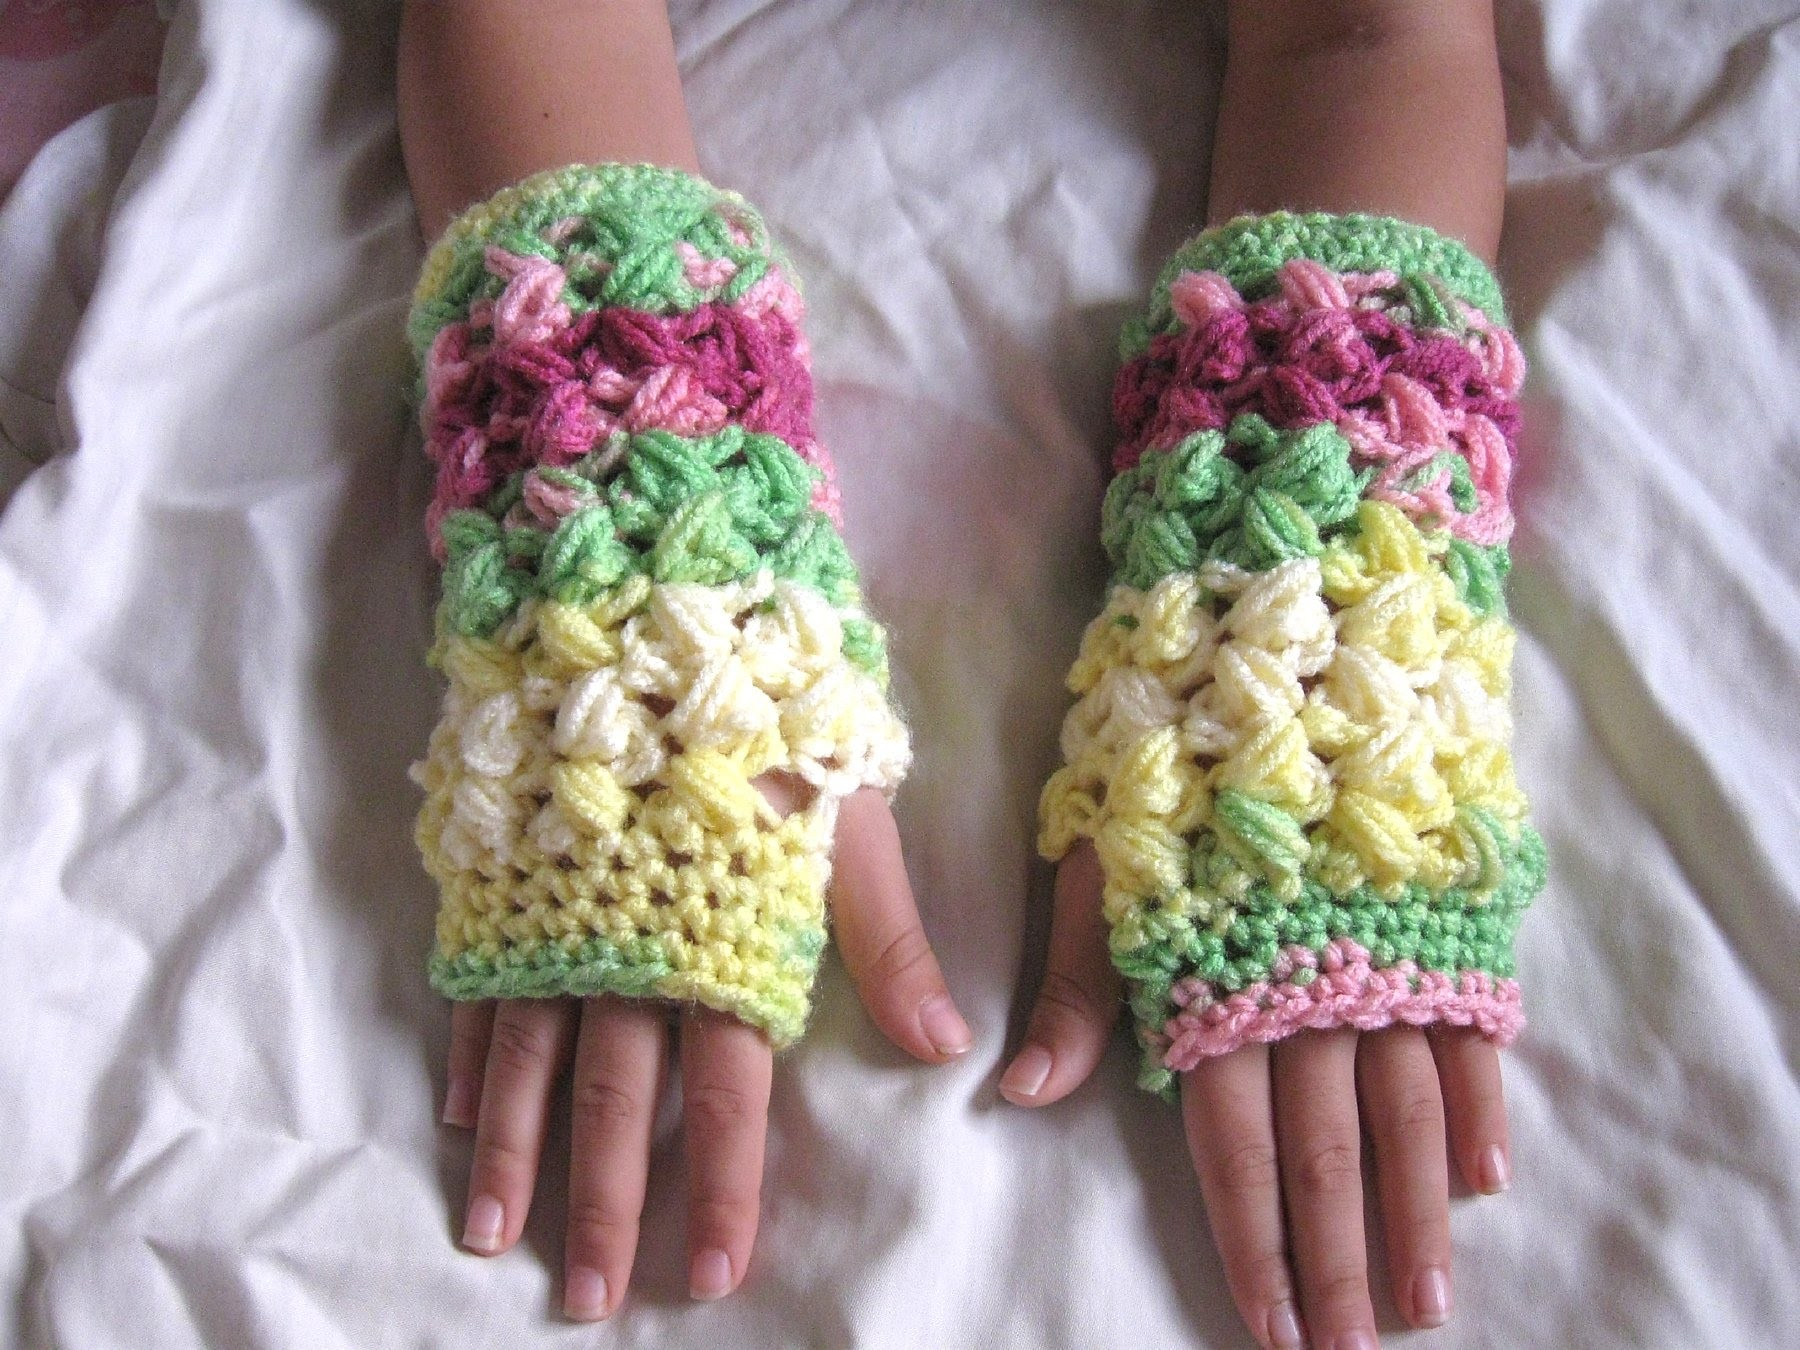 Zig Zag Puff Stitch Finger less Gloves - Crochet Tutorial